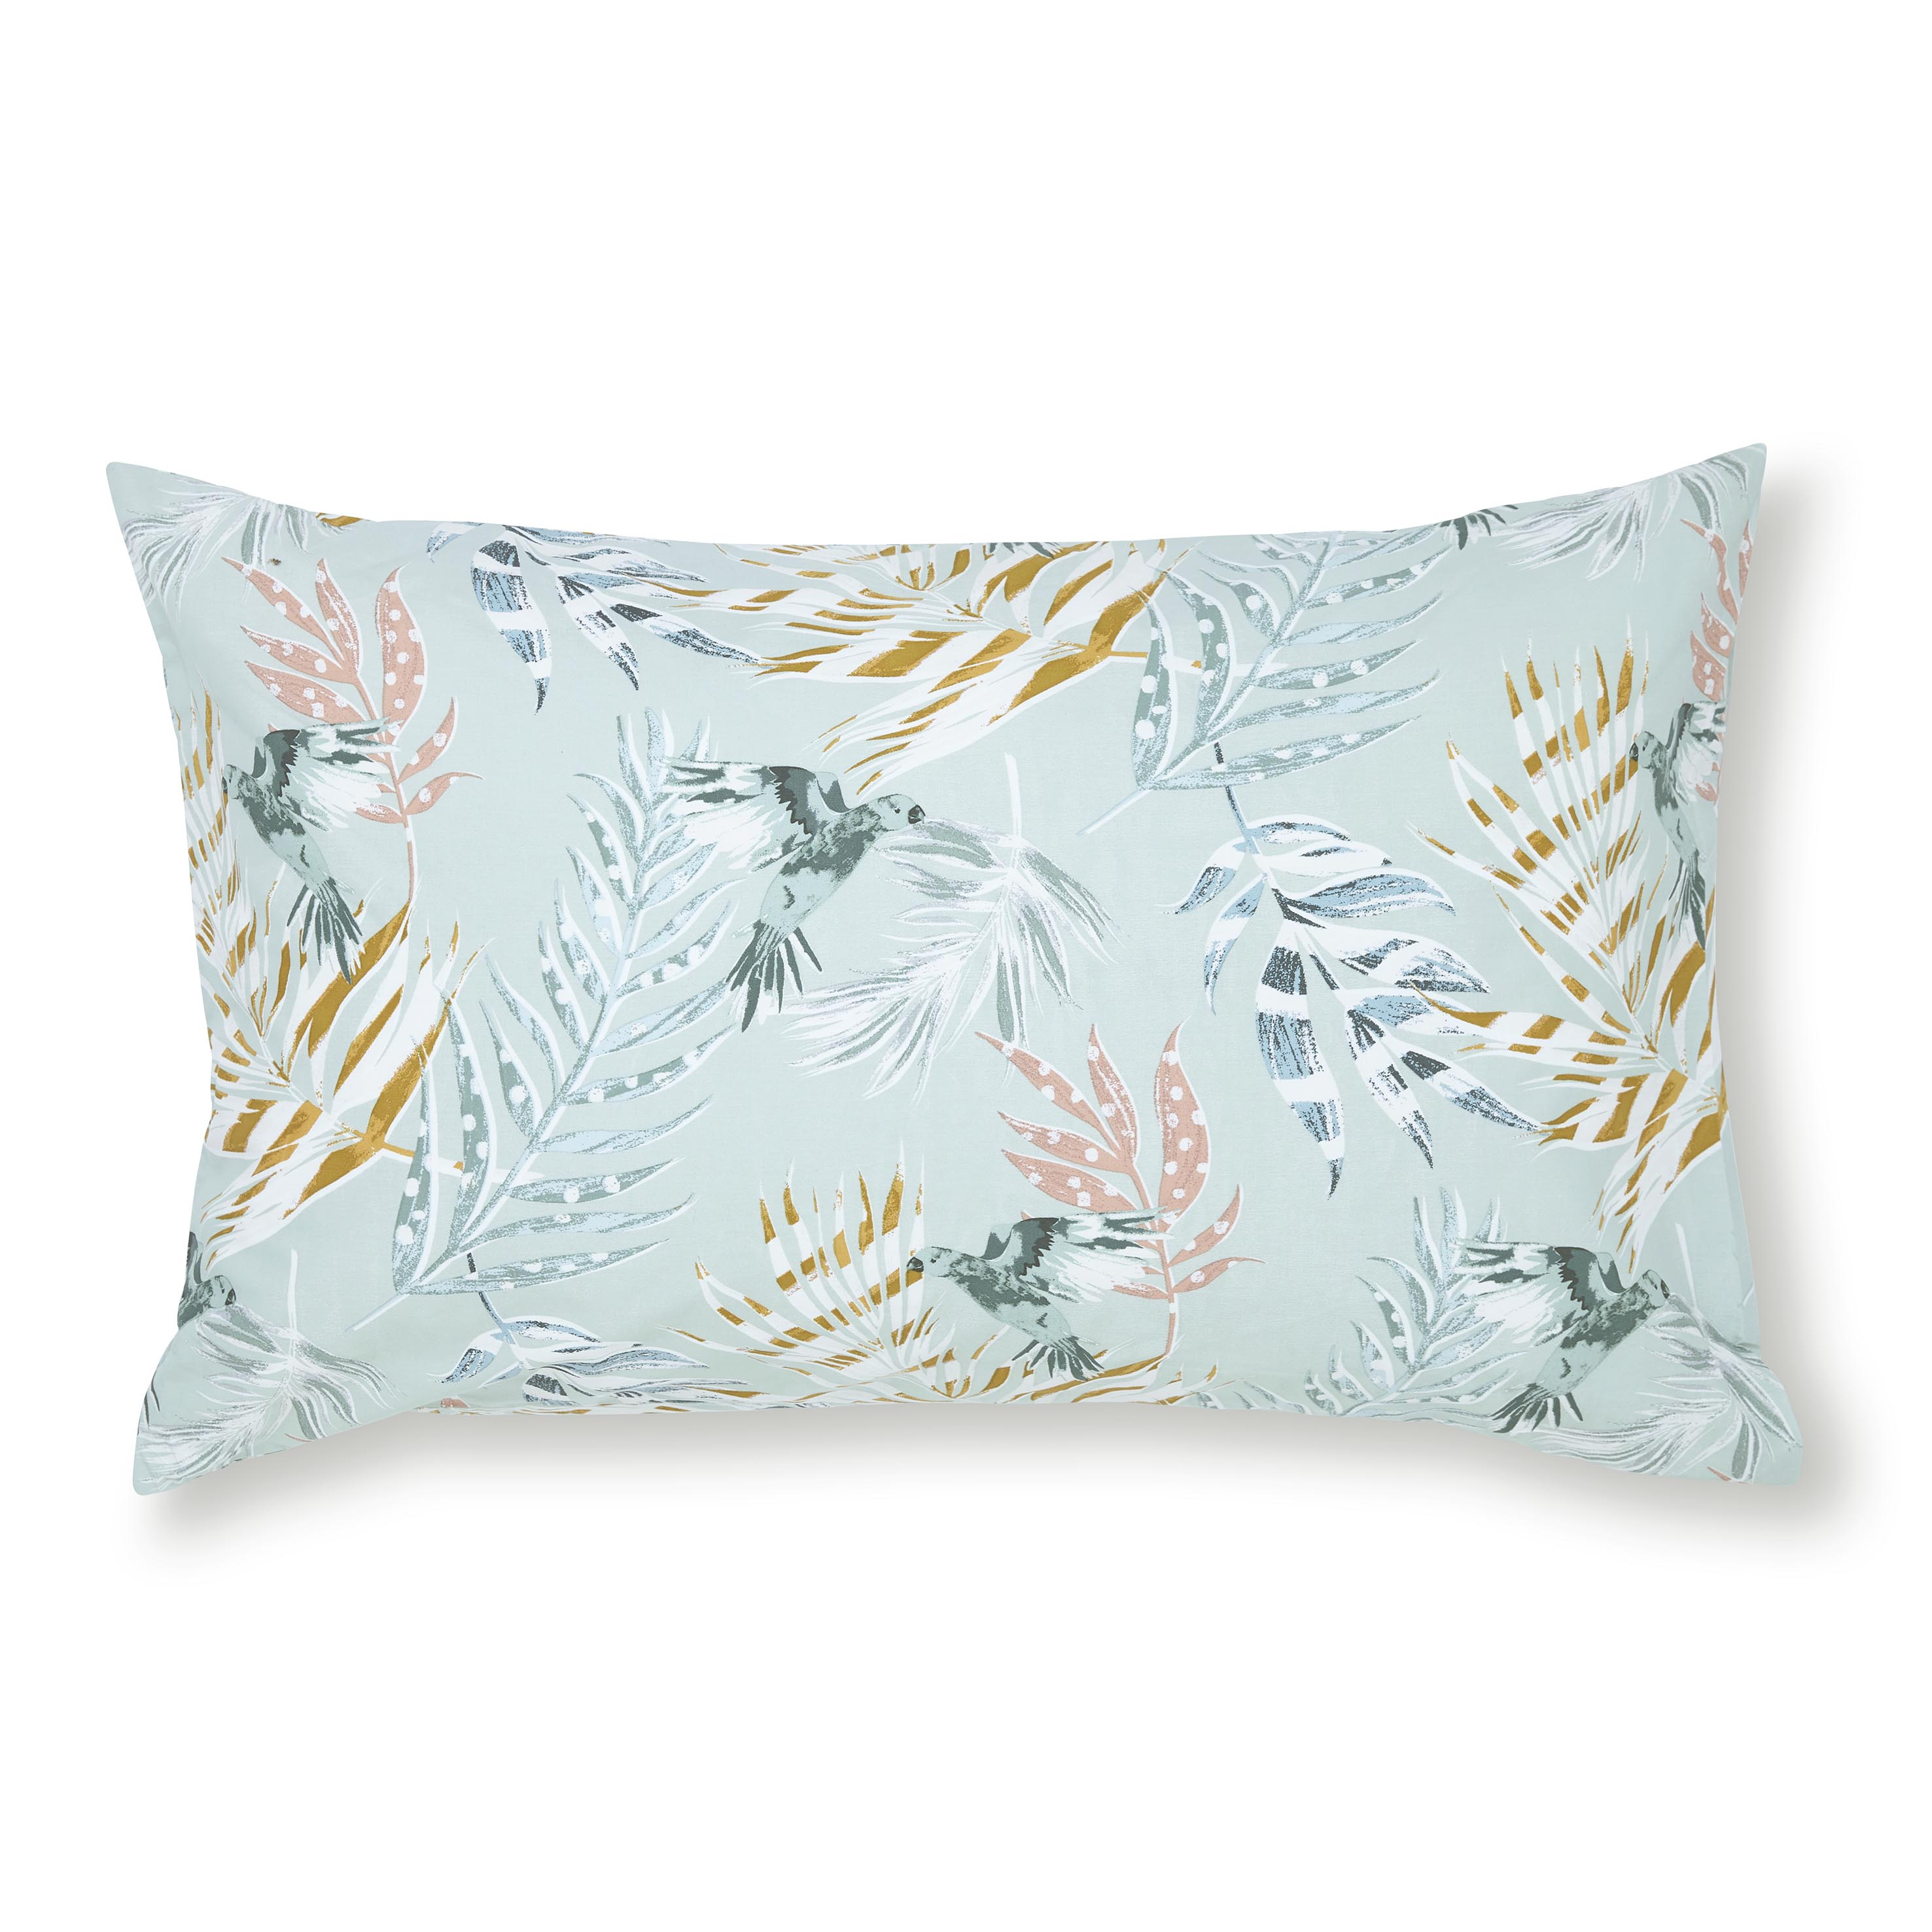 PARADISE PARROT STANDARD PILLOWCASE PAIR - SPEARMINT